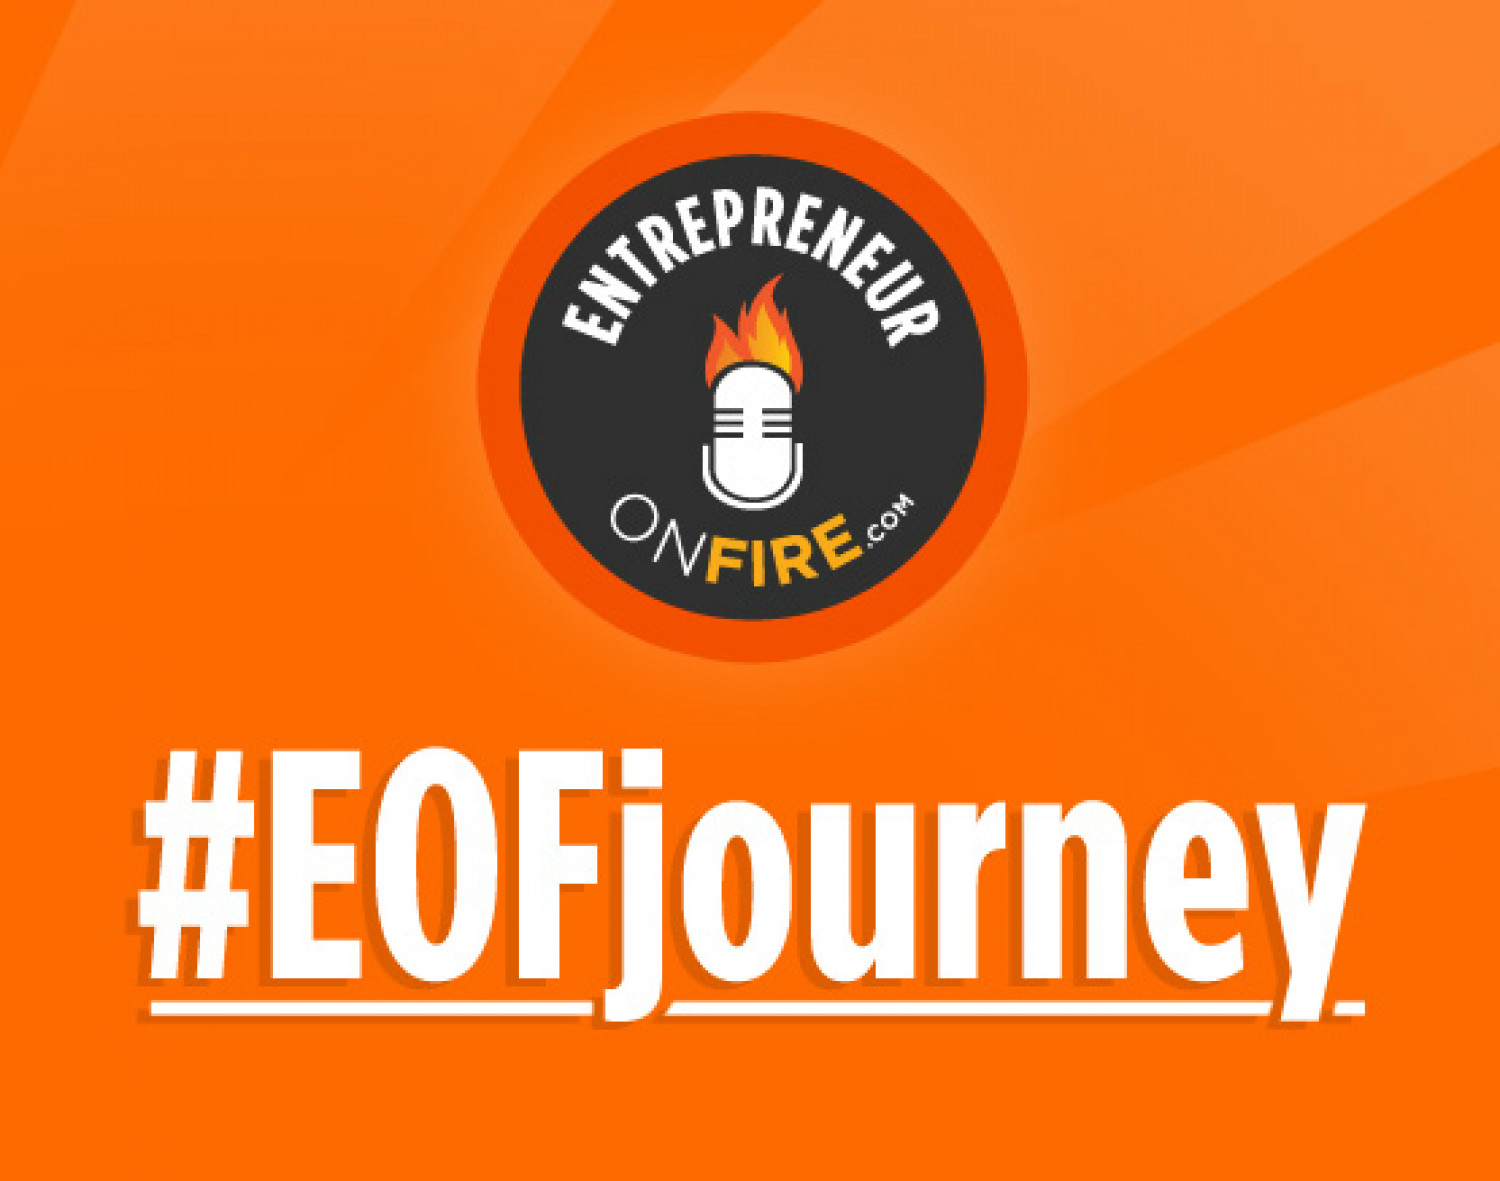 The EntrepreneurOnFire Journey Infographic